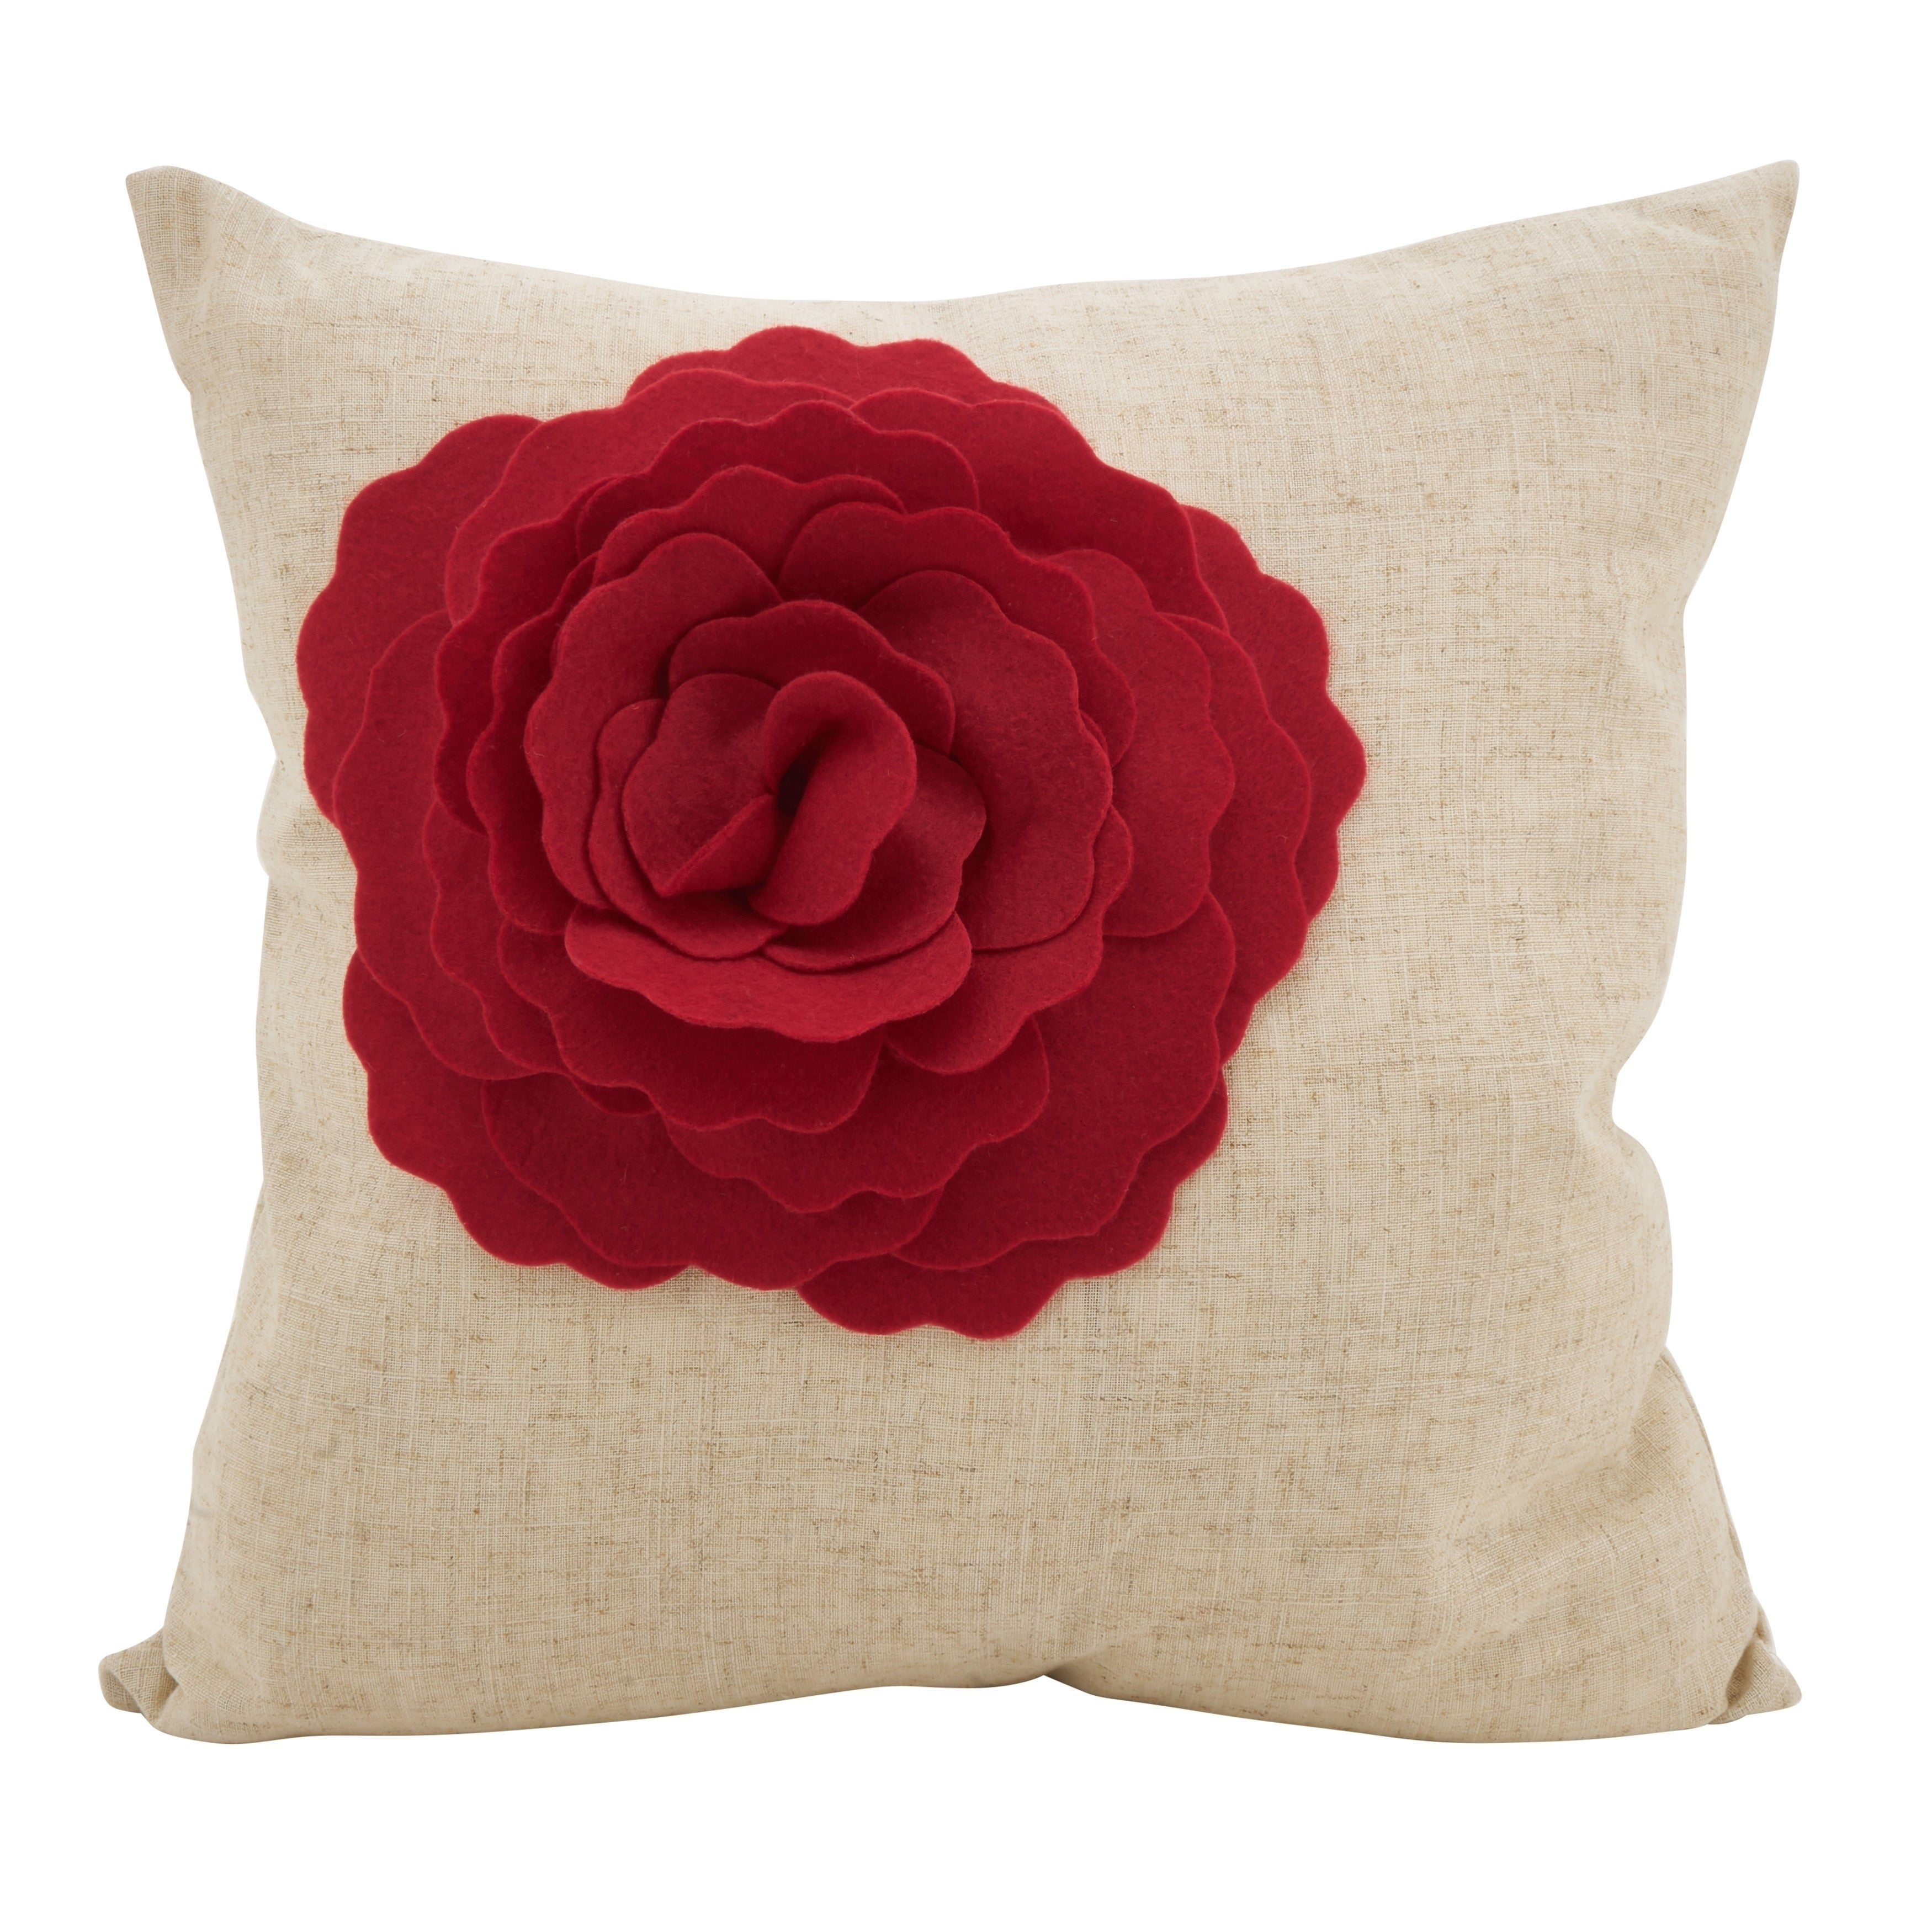 Red Fl Throw Pillows Online At Our Best Decorative Accessories Deals